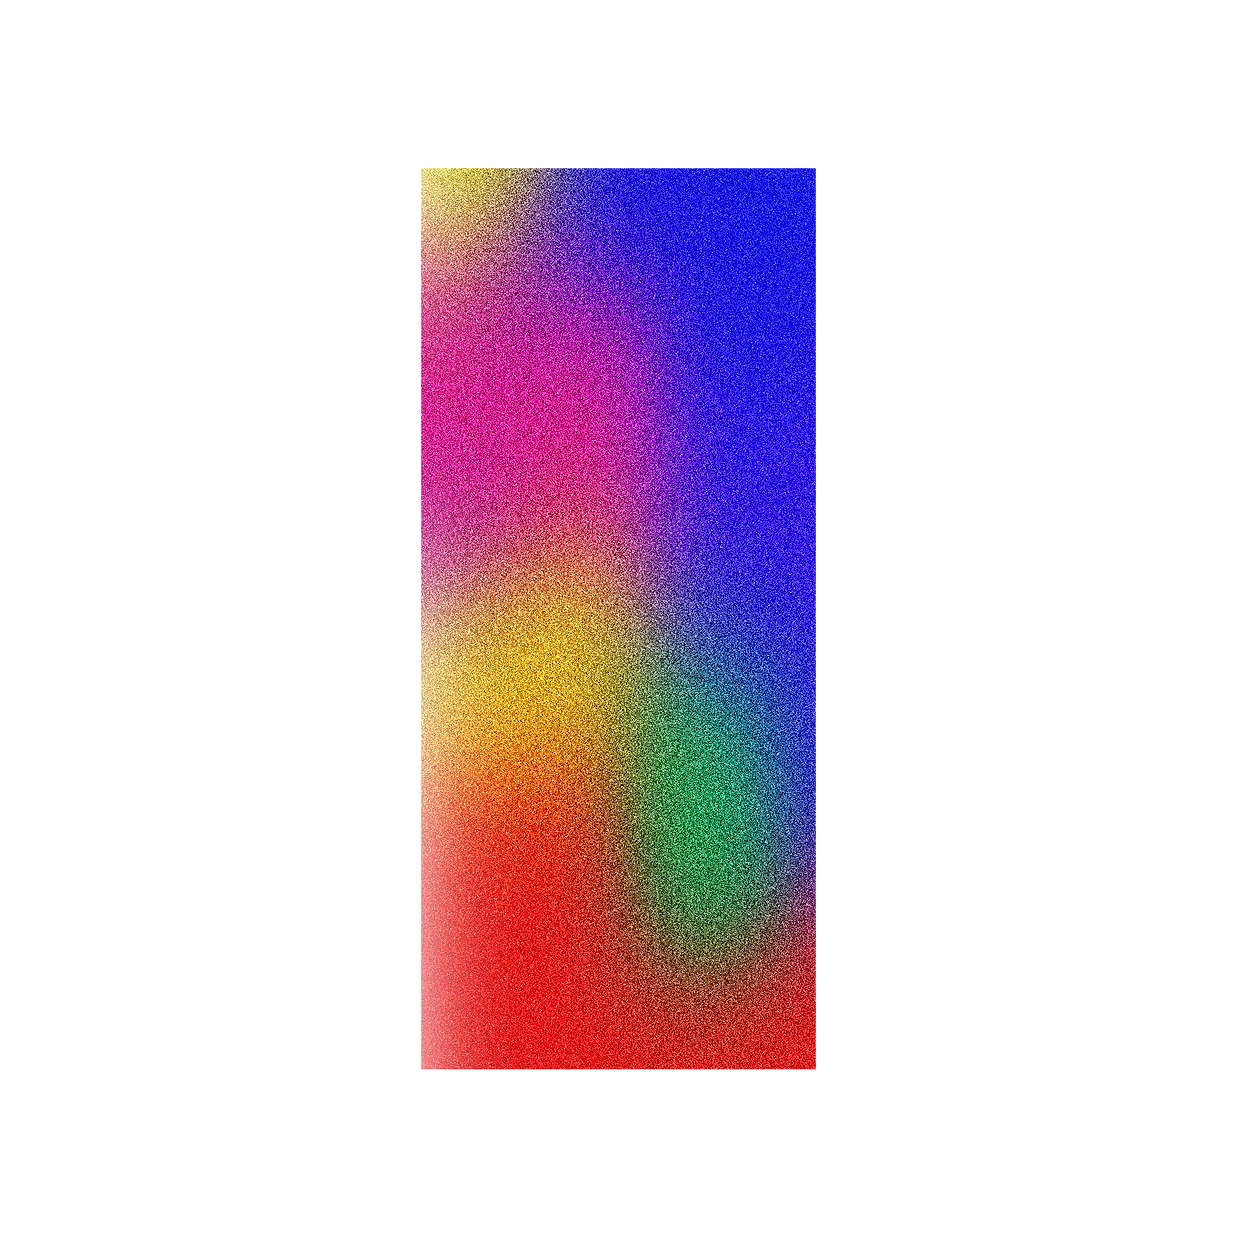 Rectangle 04.png